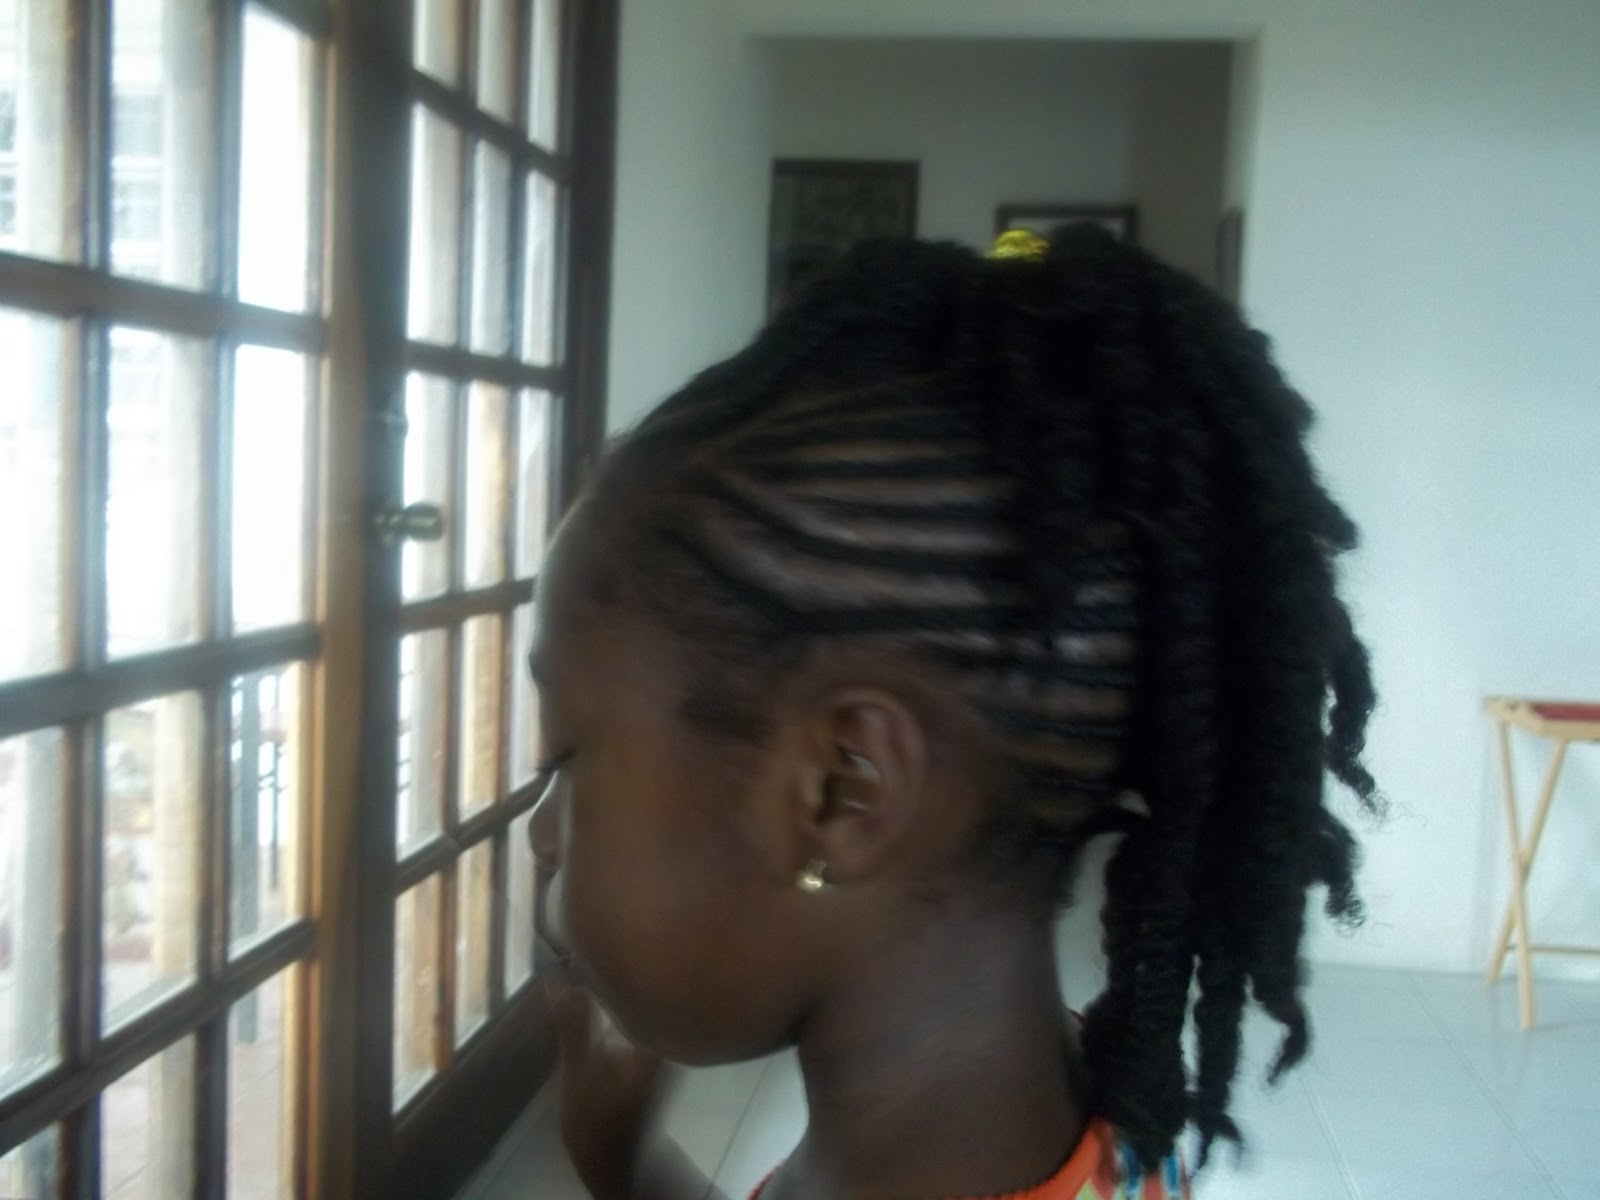 gallery emo and mohawk hairstyle 2011 Men Cornrows traditional . 1600 x 1200.Hairstyles Braids Children